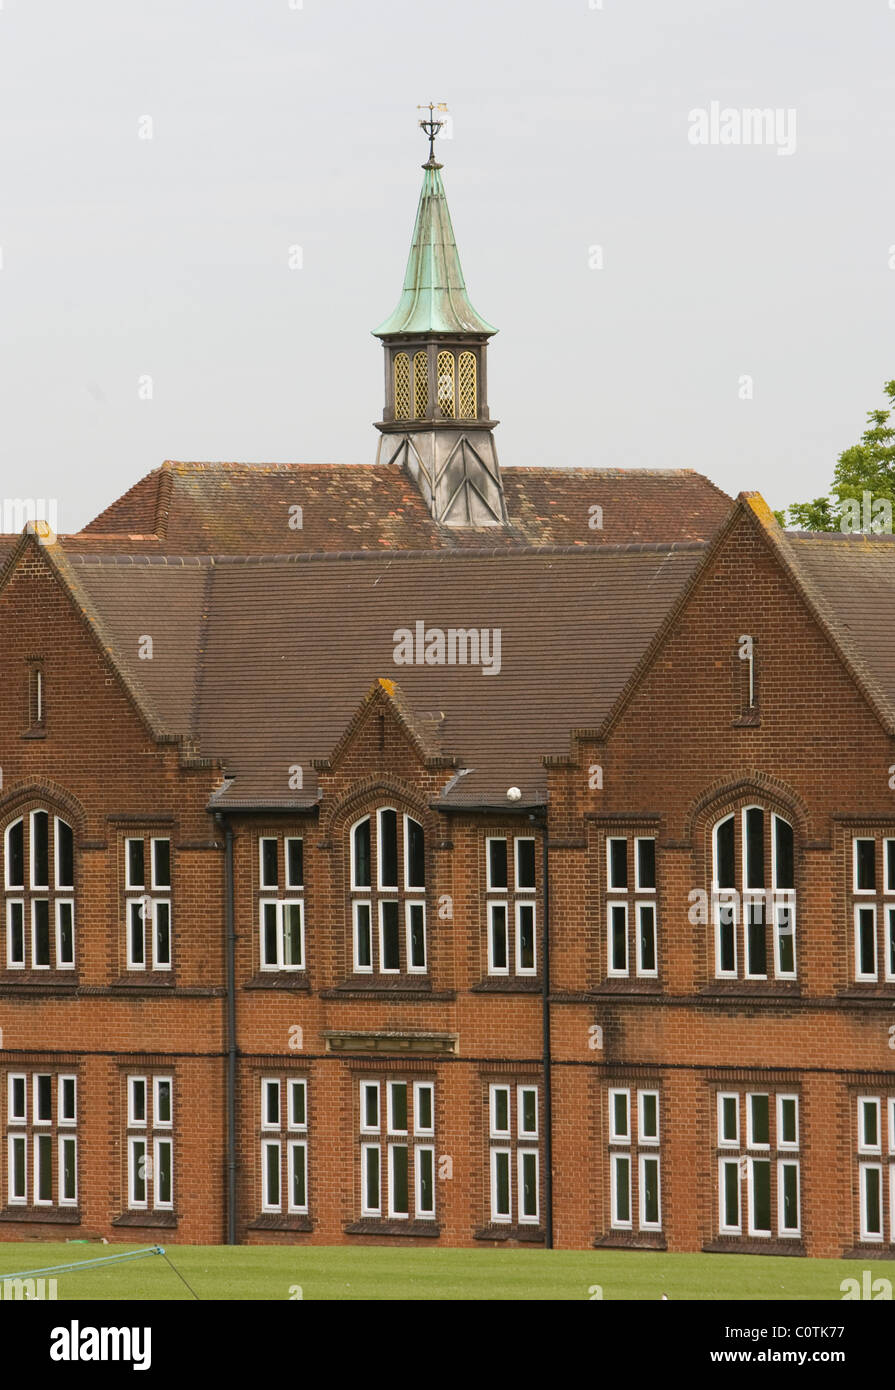 Maidstone Grammar school in Maidstone, Kent, U.K. - Stock Image